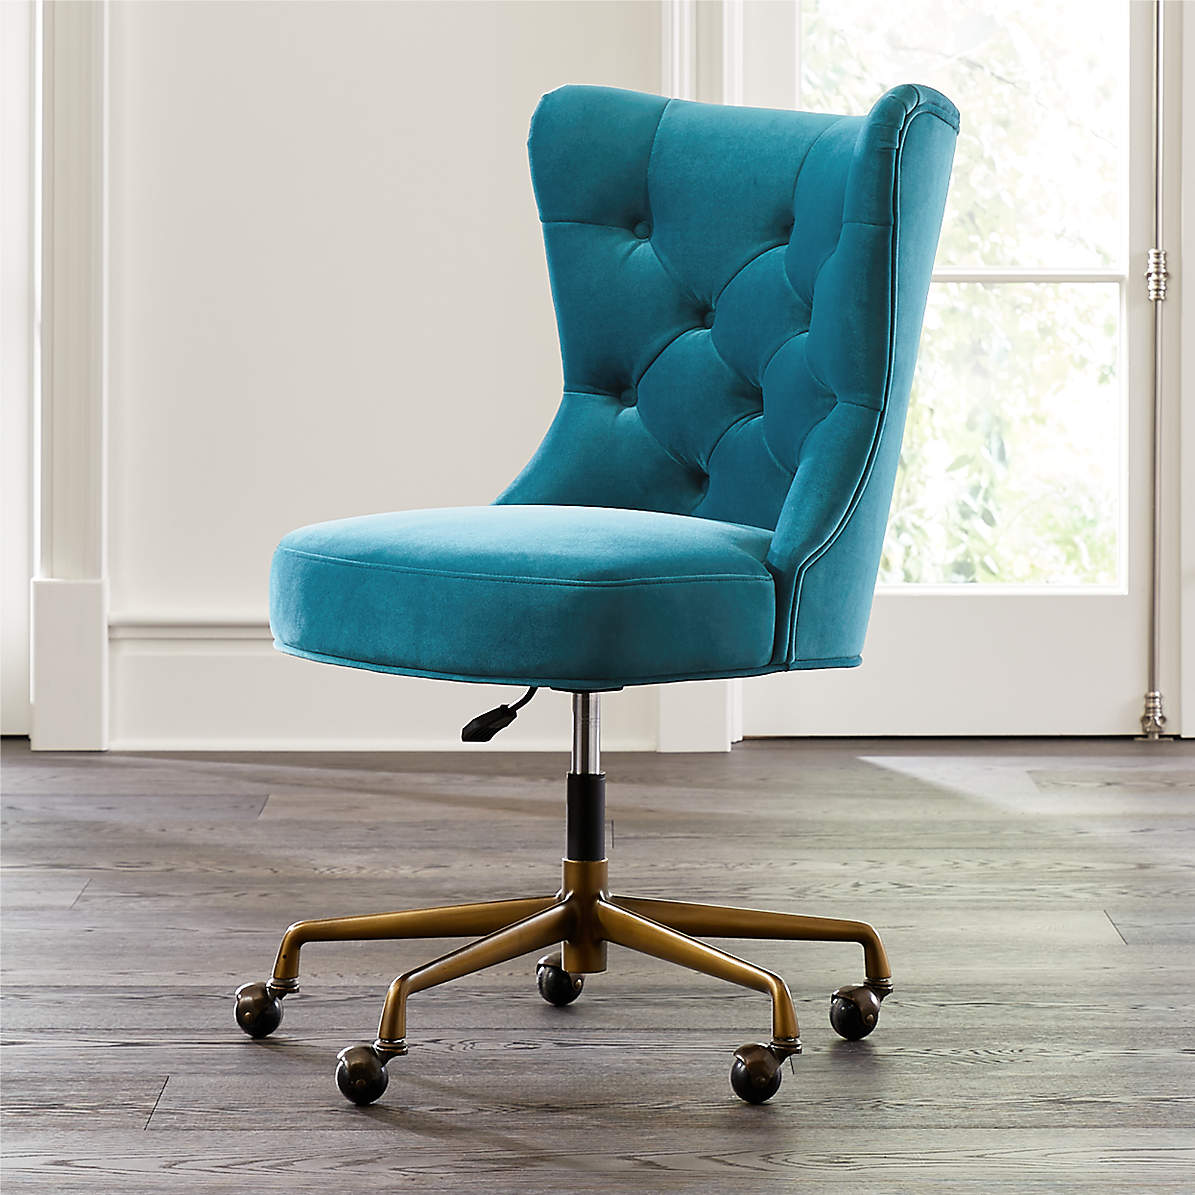 Isla Teal Velvet Office Chair Reviews Crate And Barrel